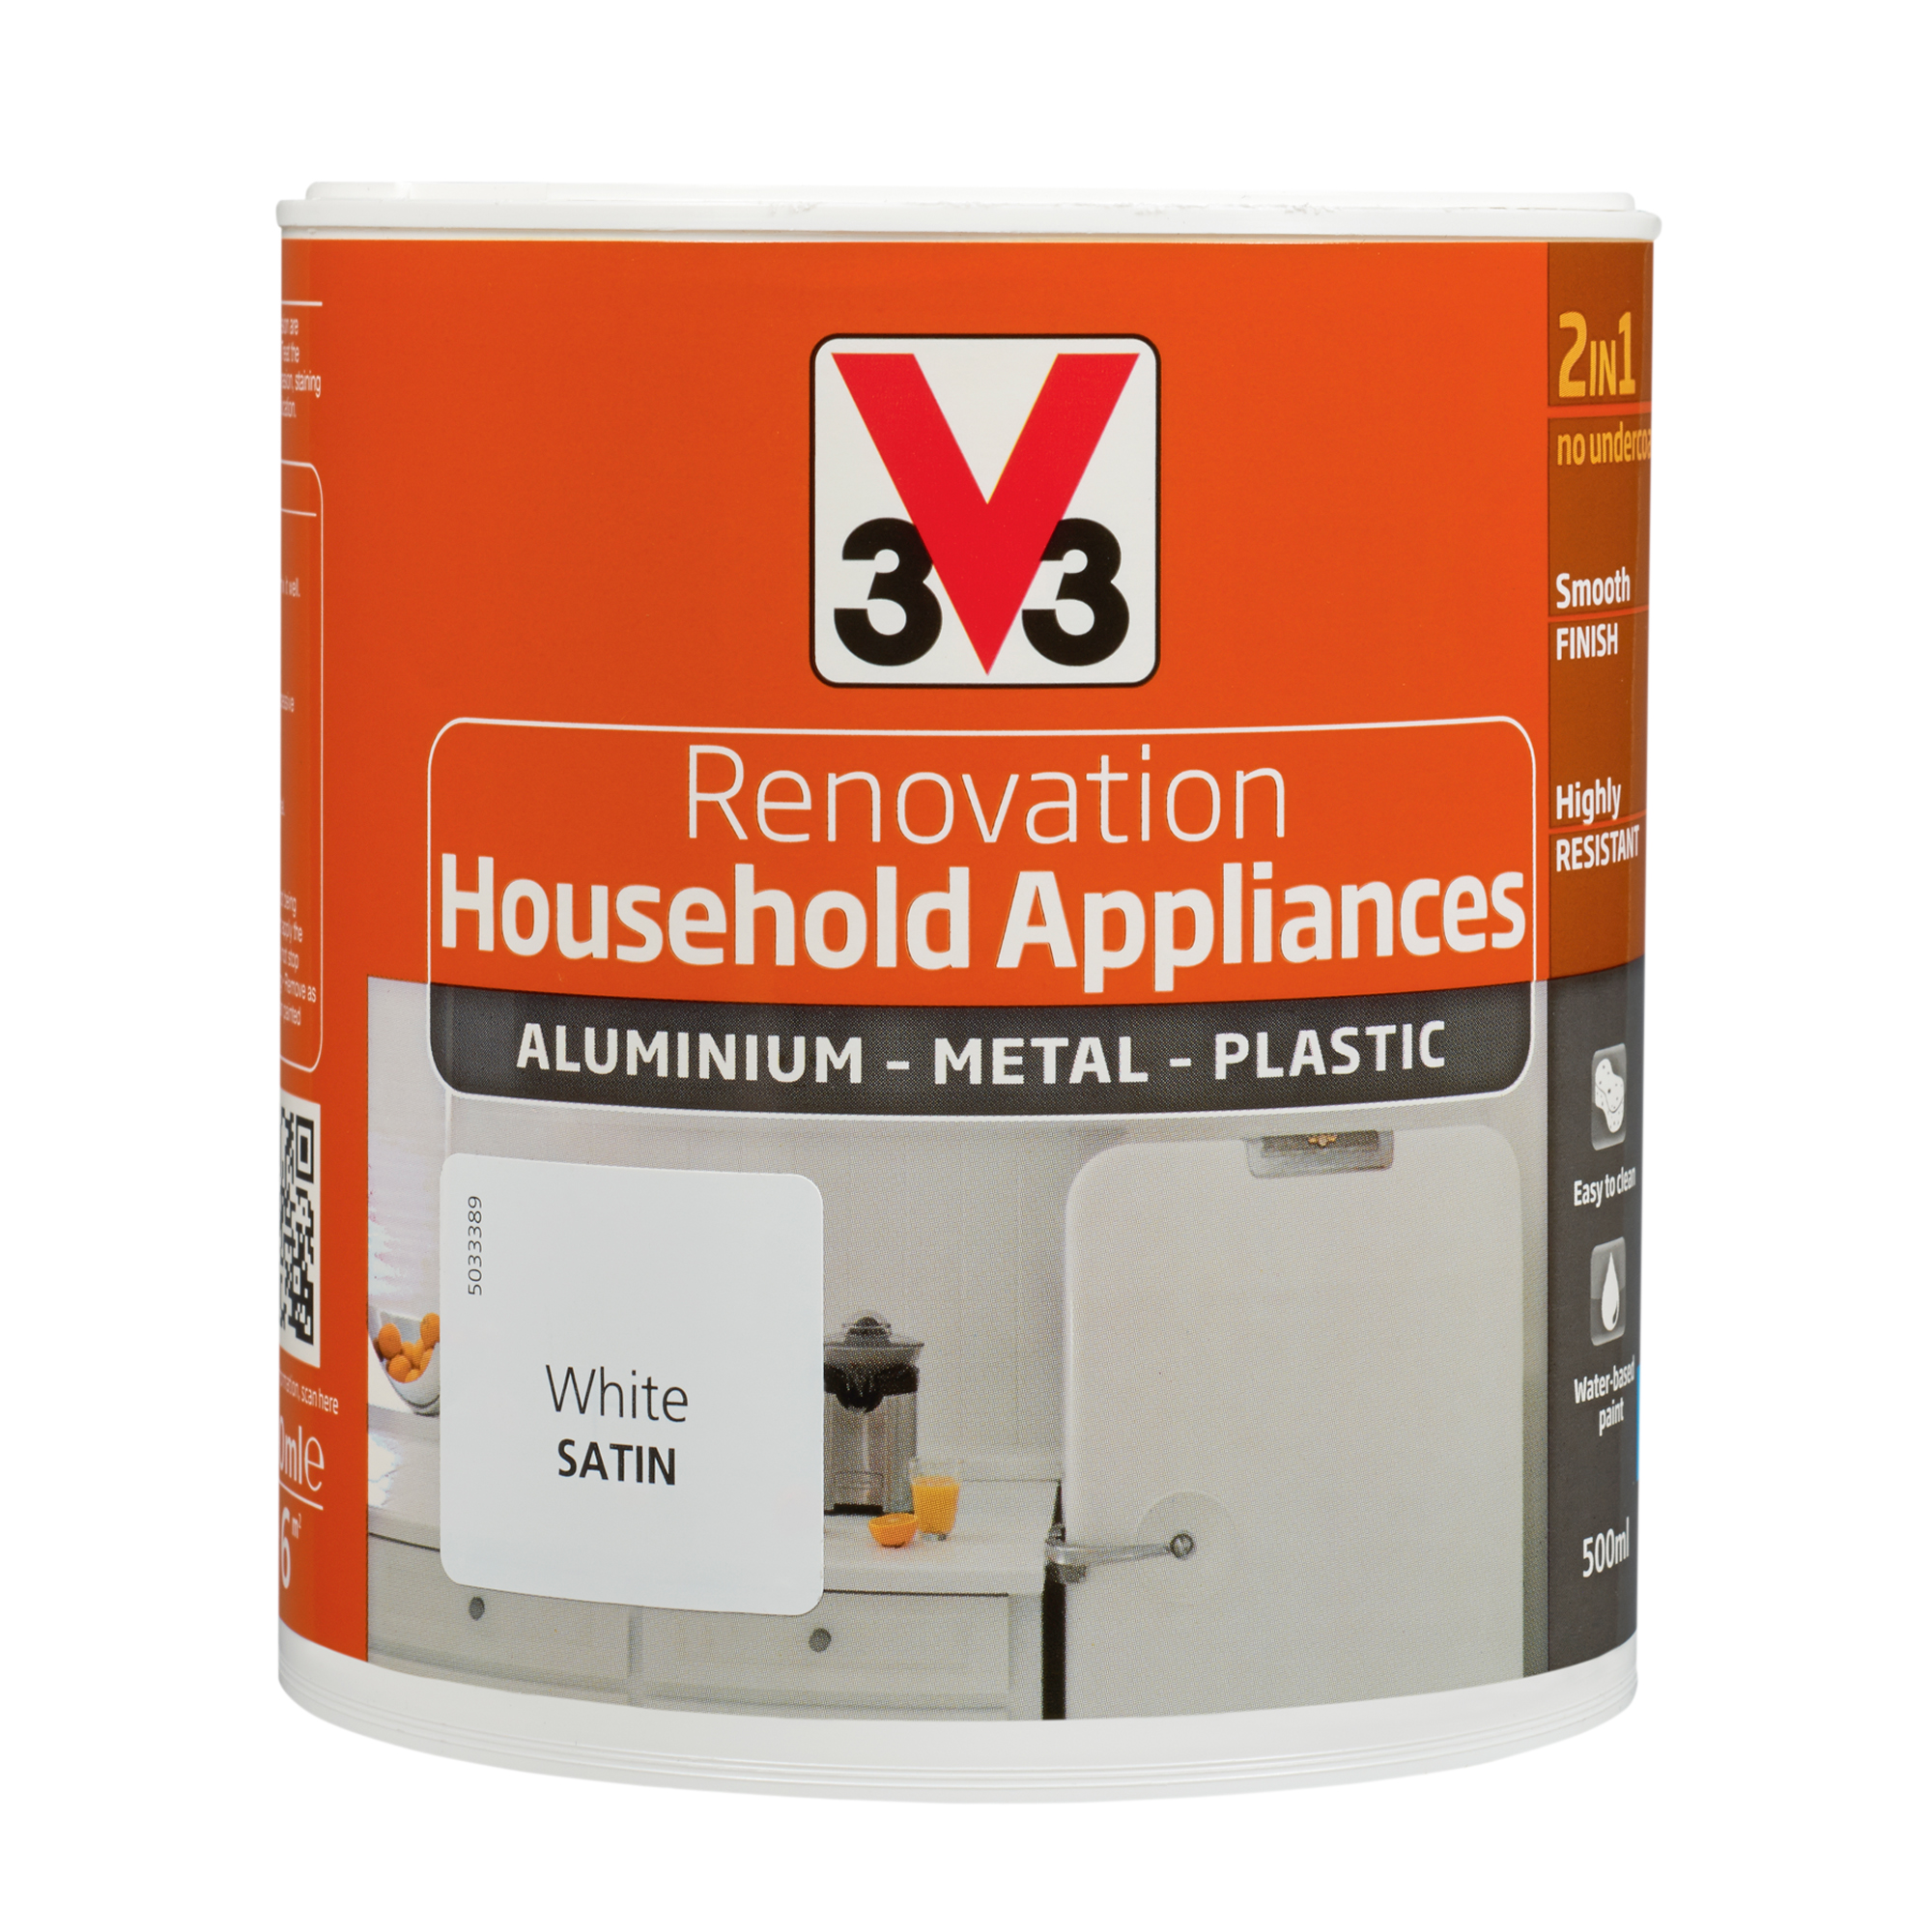 v33 renovation household appliances